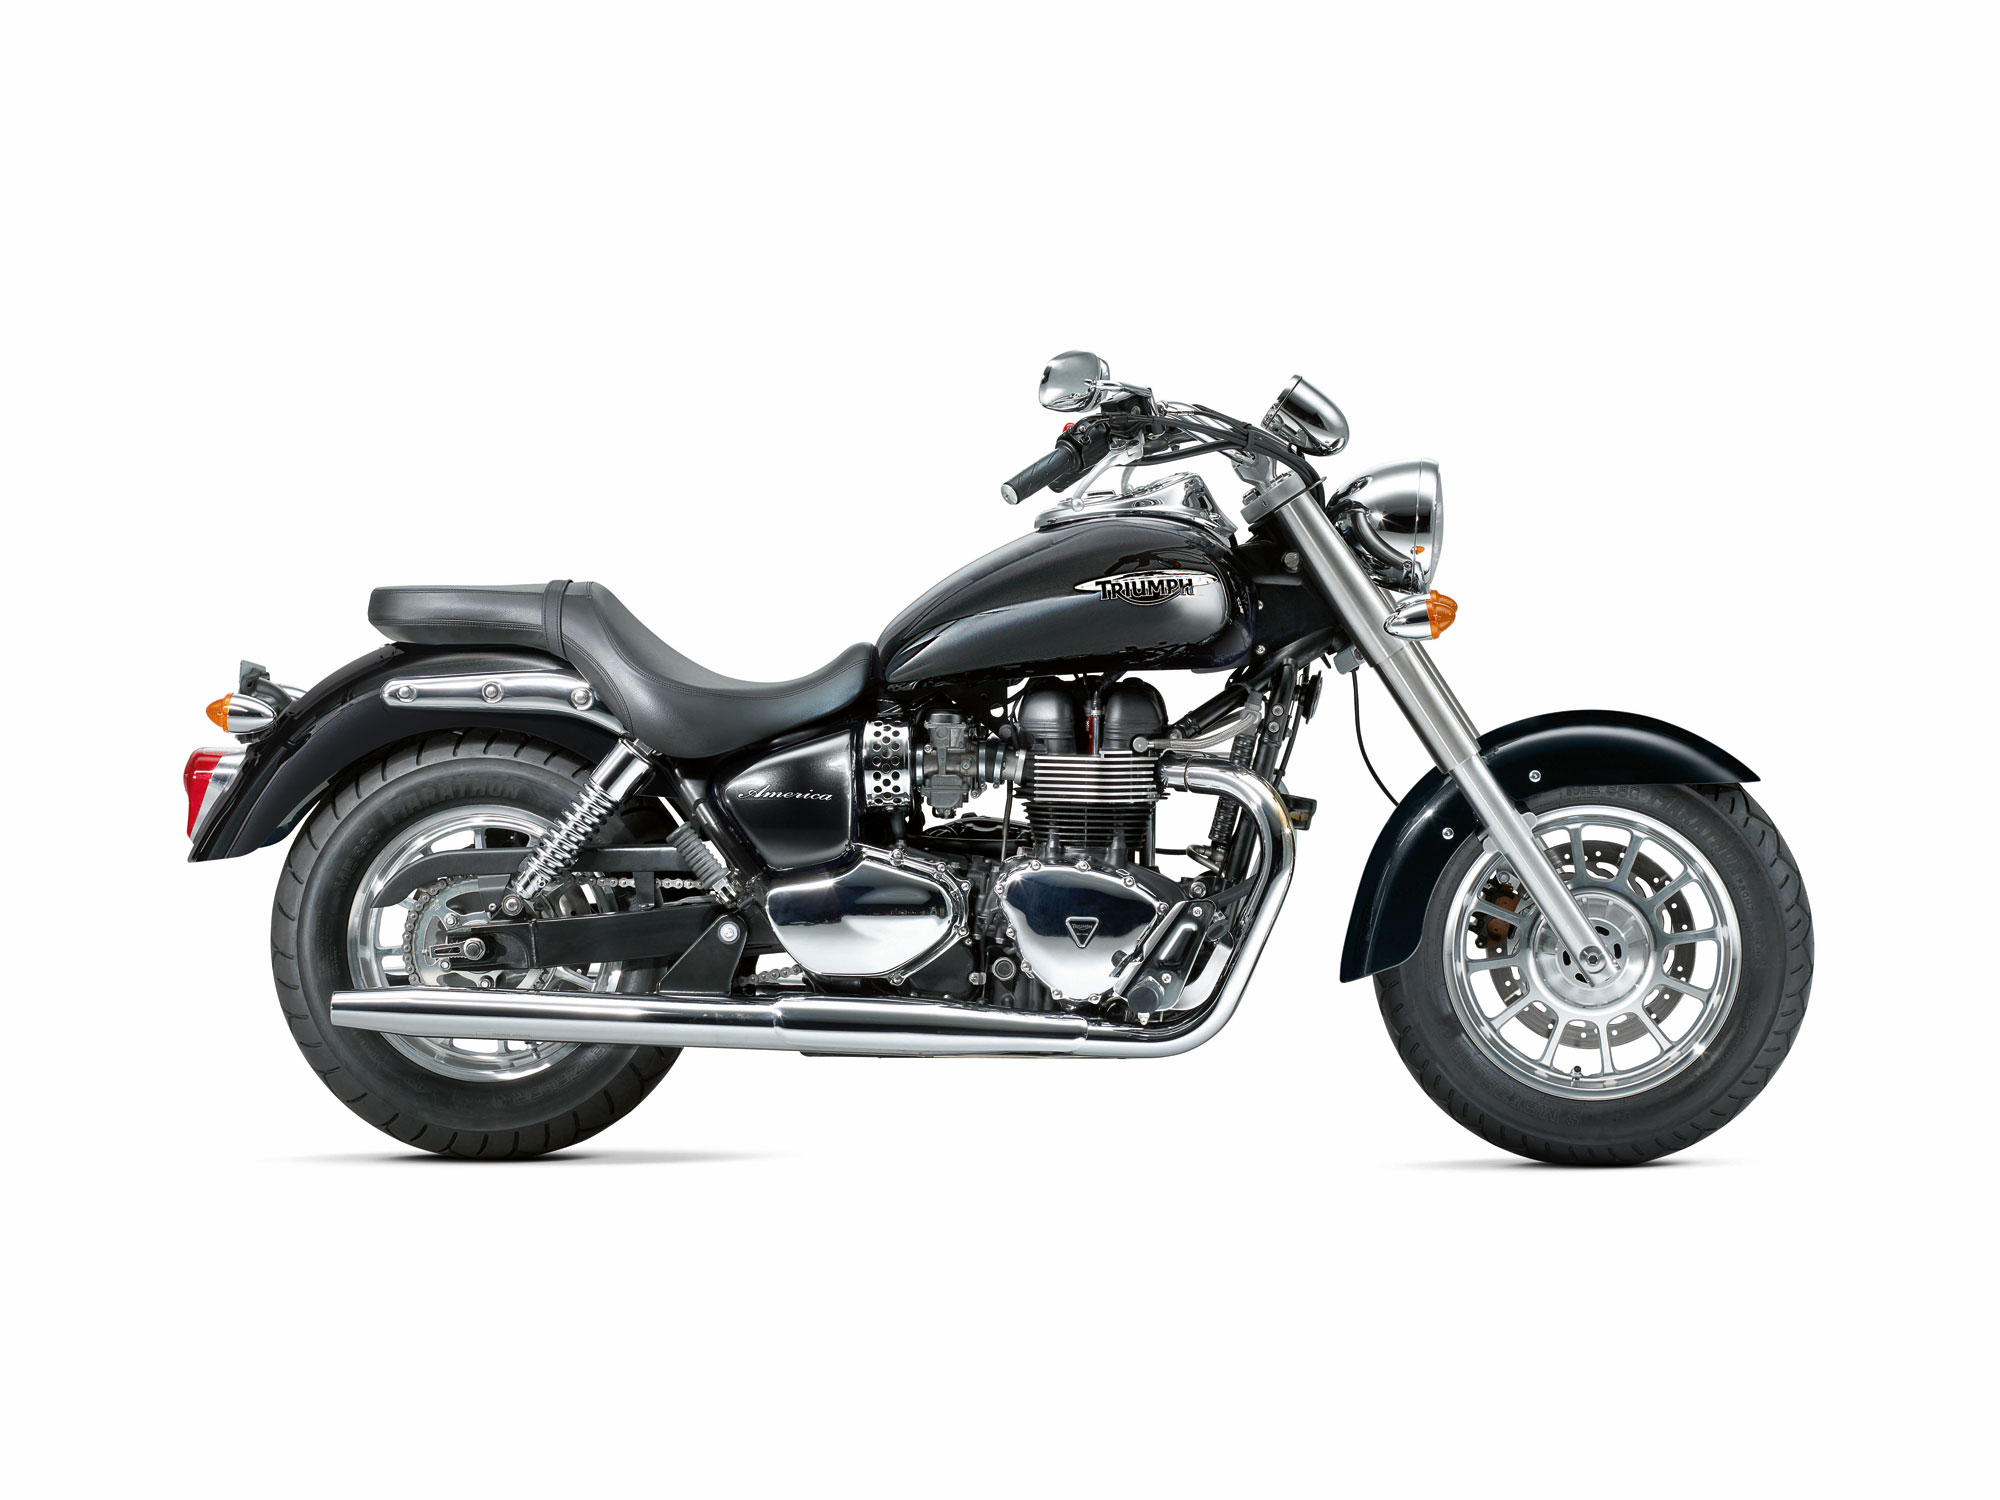 TRIUMPH SPEEDMASTER black